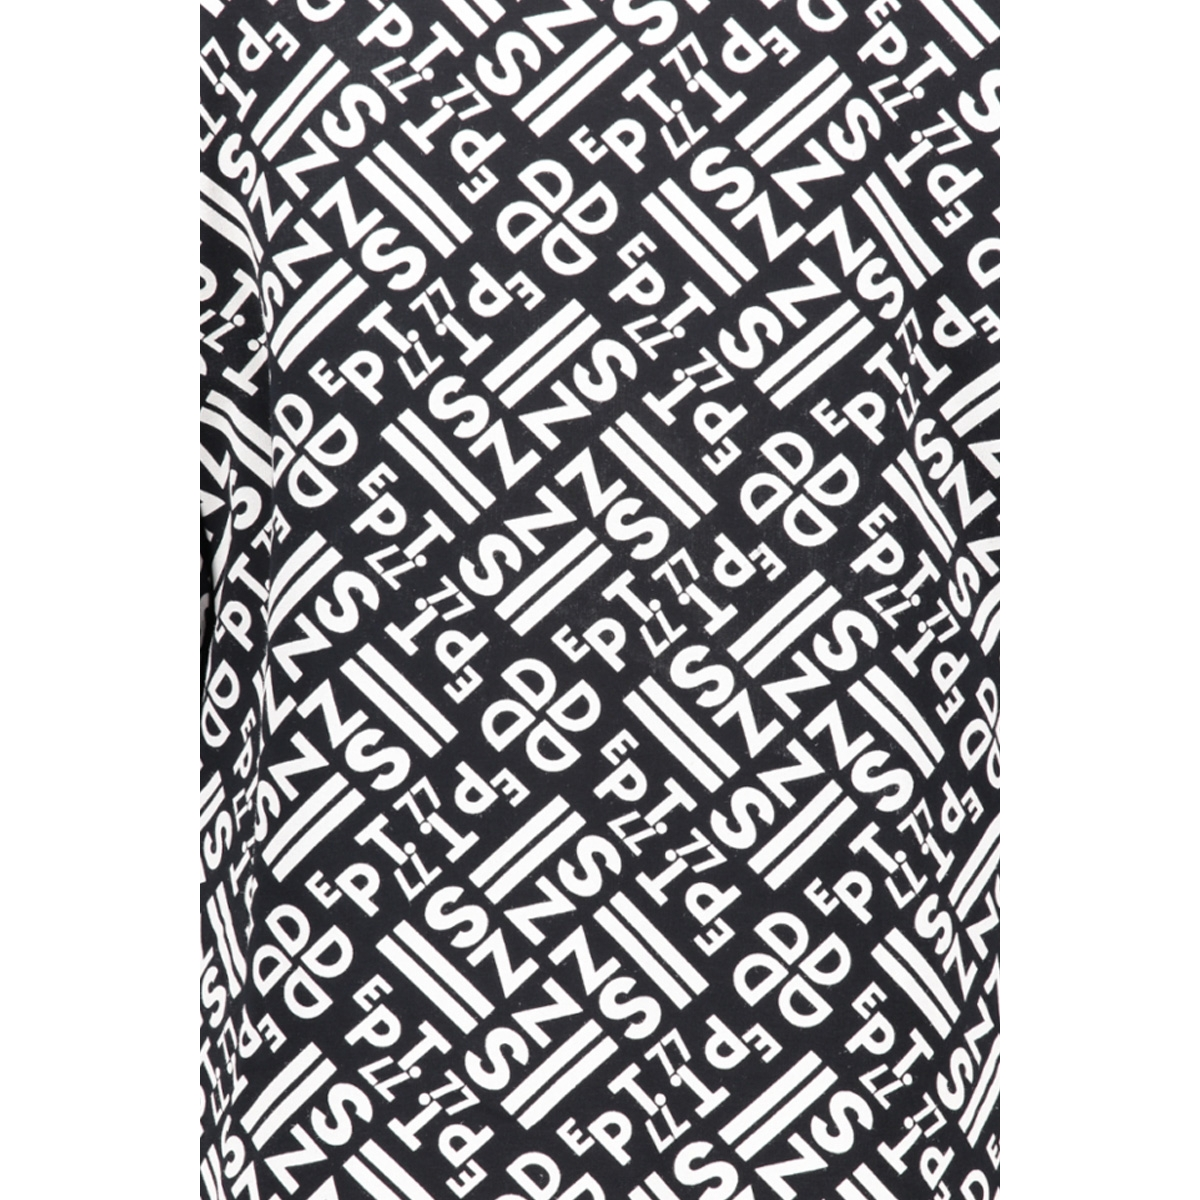 stacey allover printed sporty dress 192 zoso jurk navy